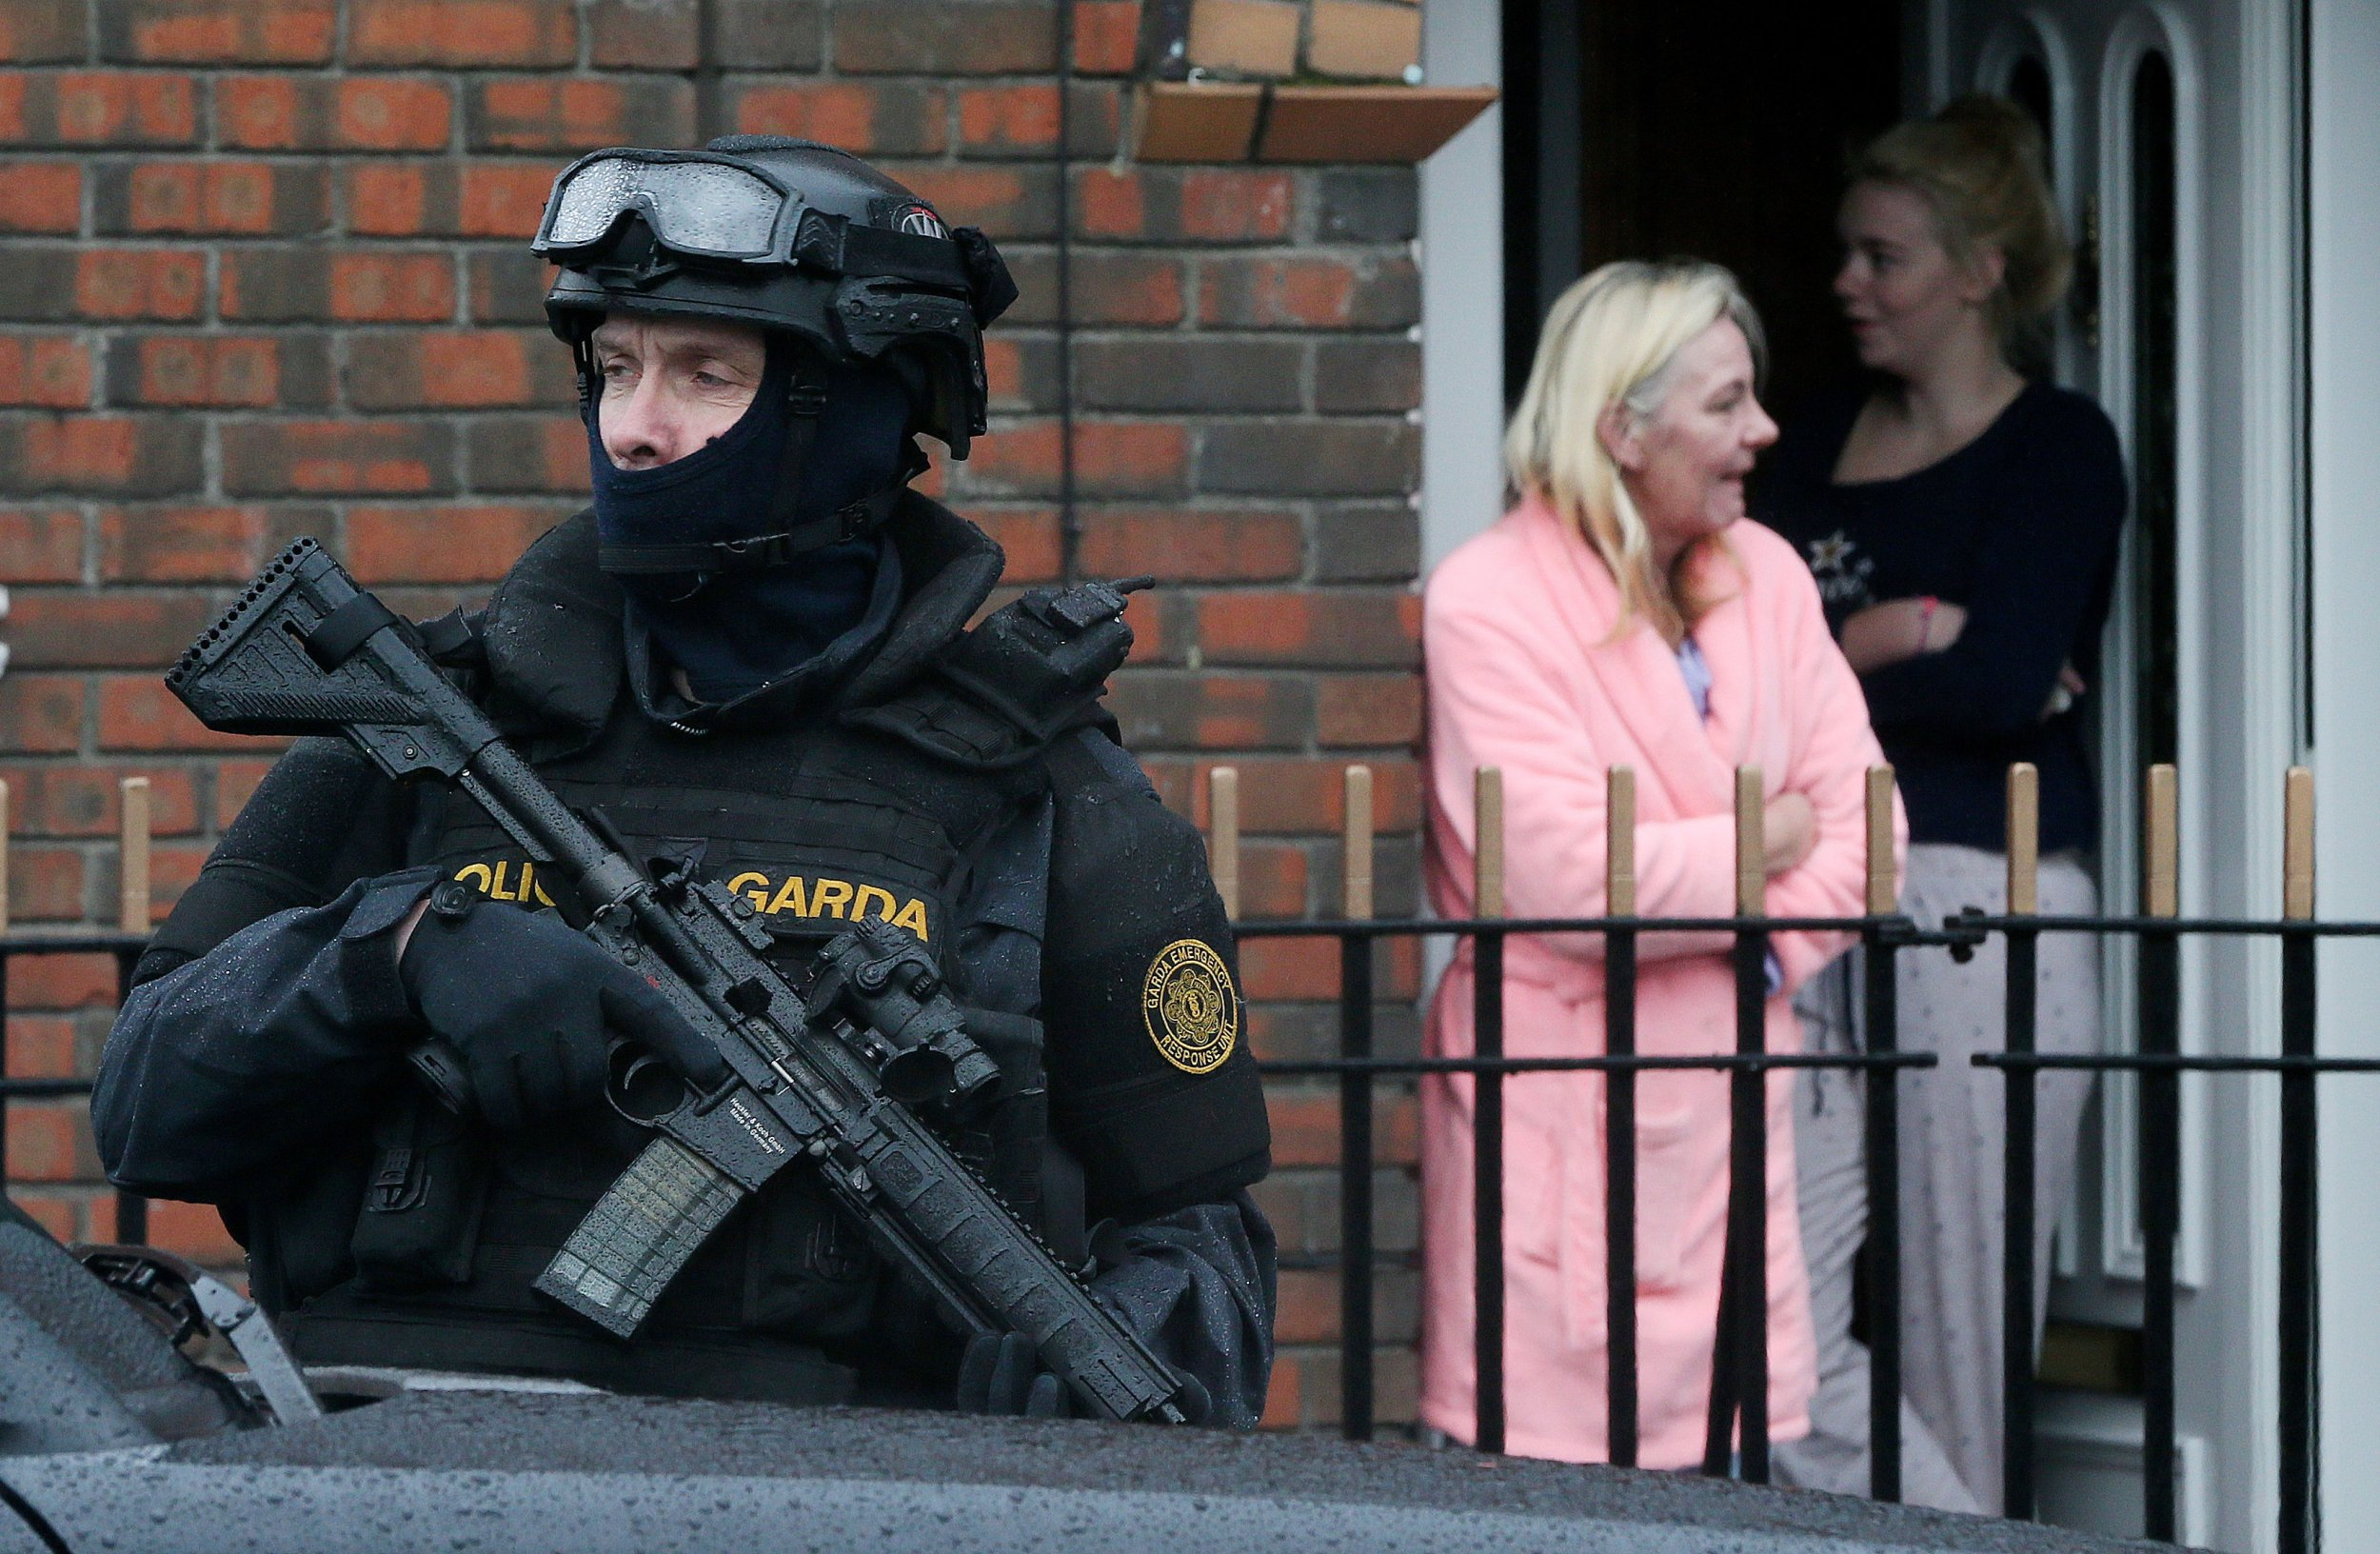 Armed Gardai on patrol